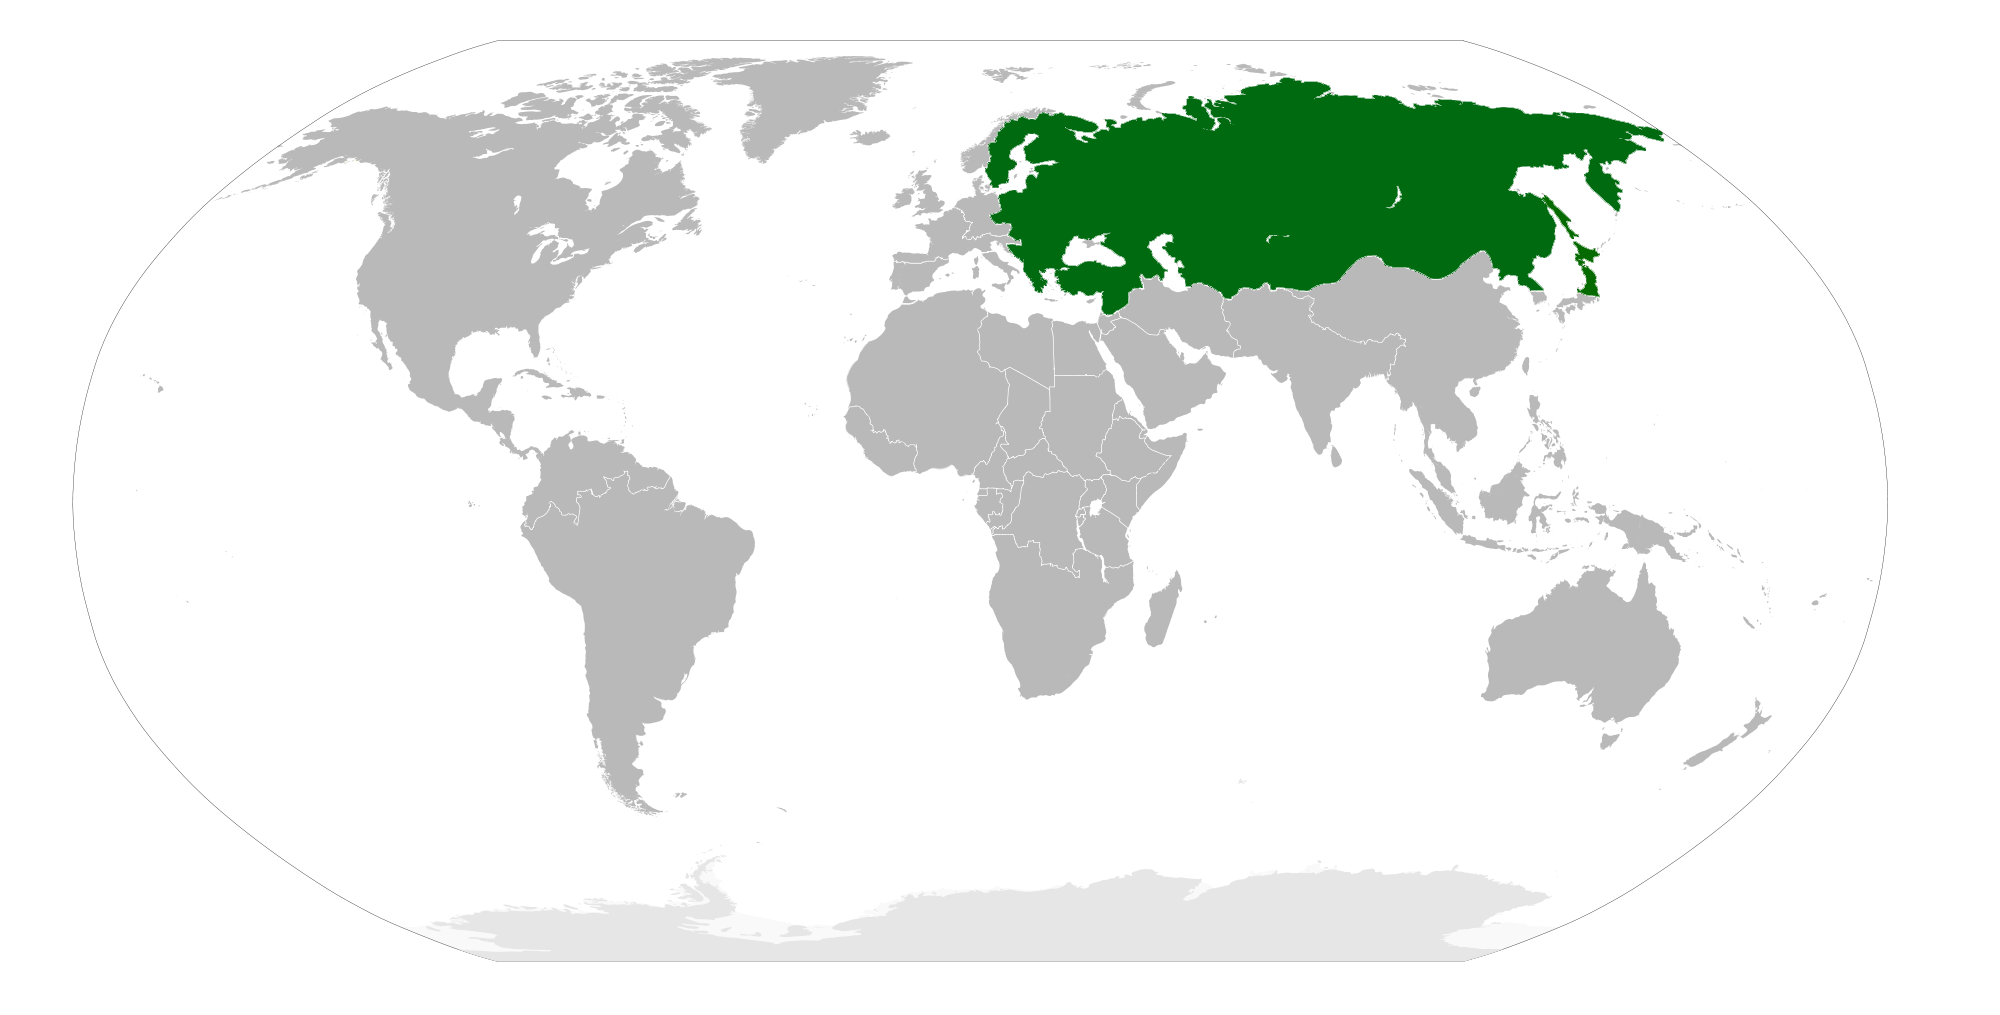 Image Location Of Russian Democratic Federationpng - Russia location